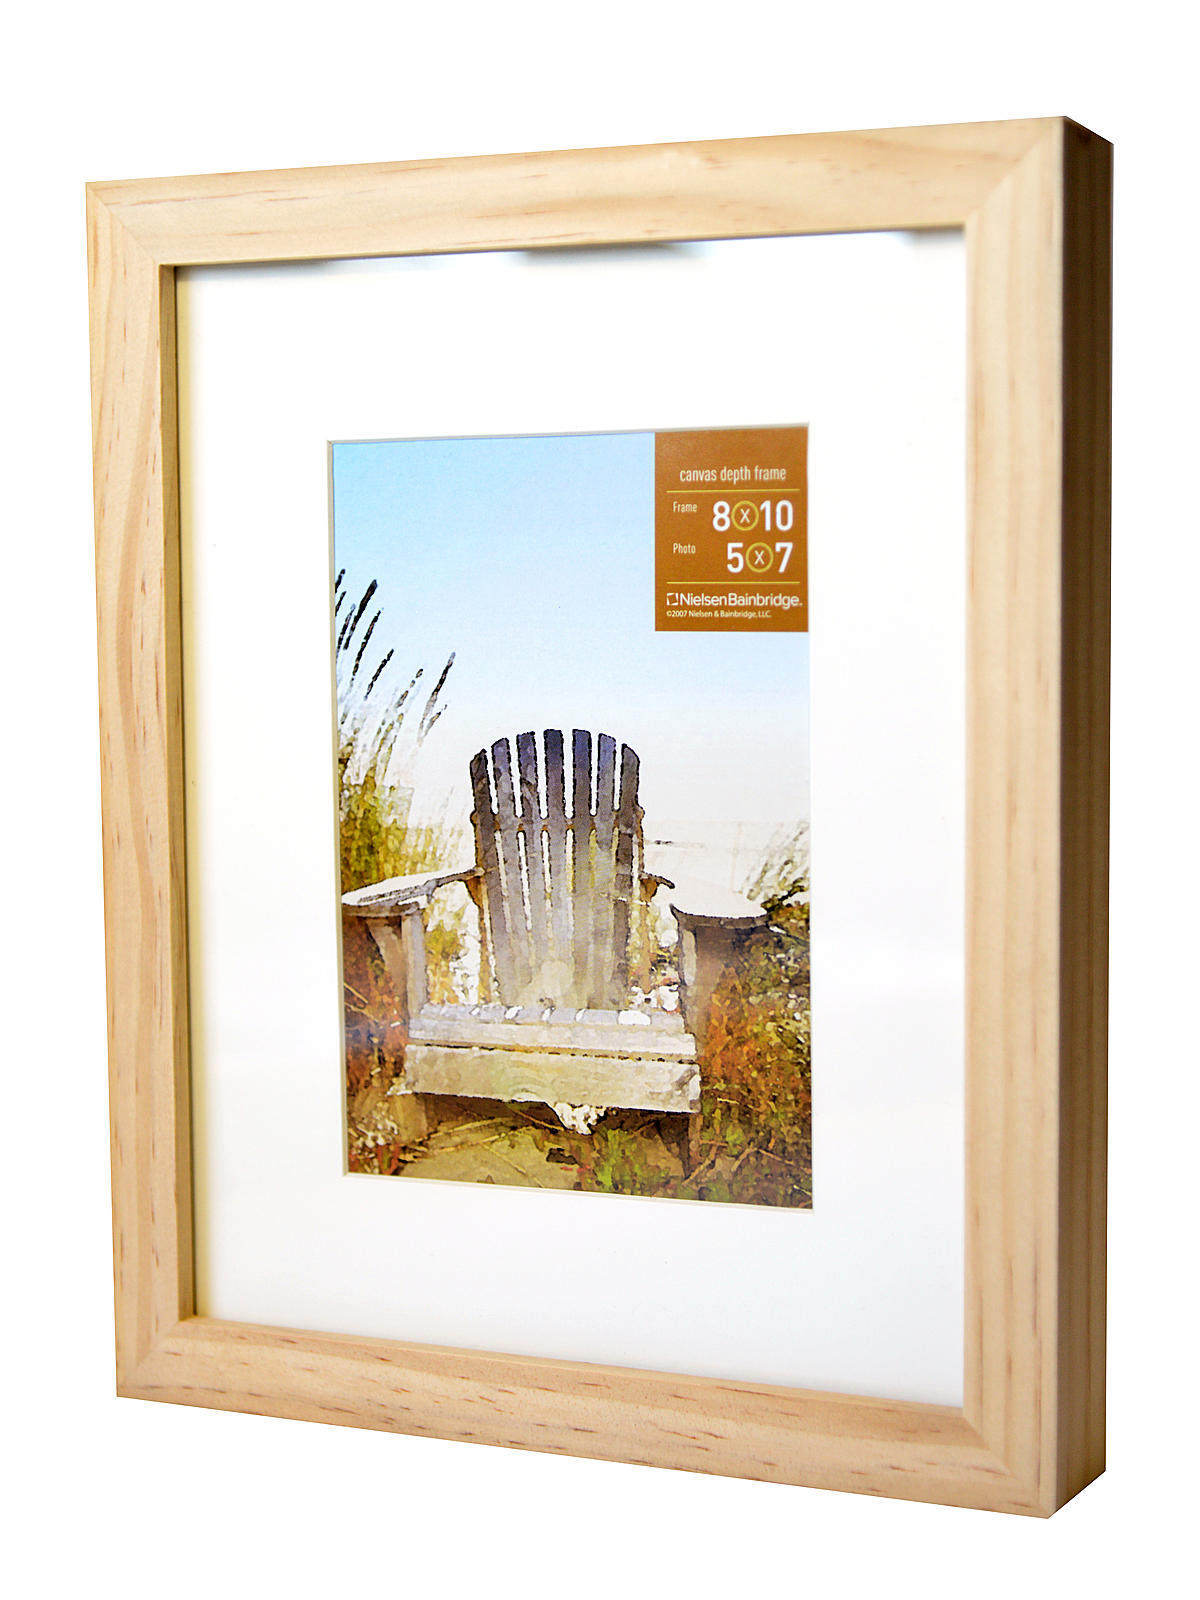 Nielsen Bainbridge Gallery Wood Frames for Canvas | MisterArt.com